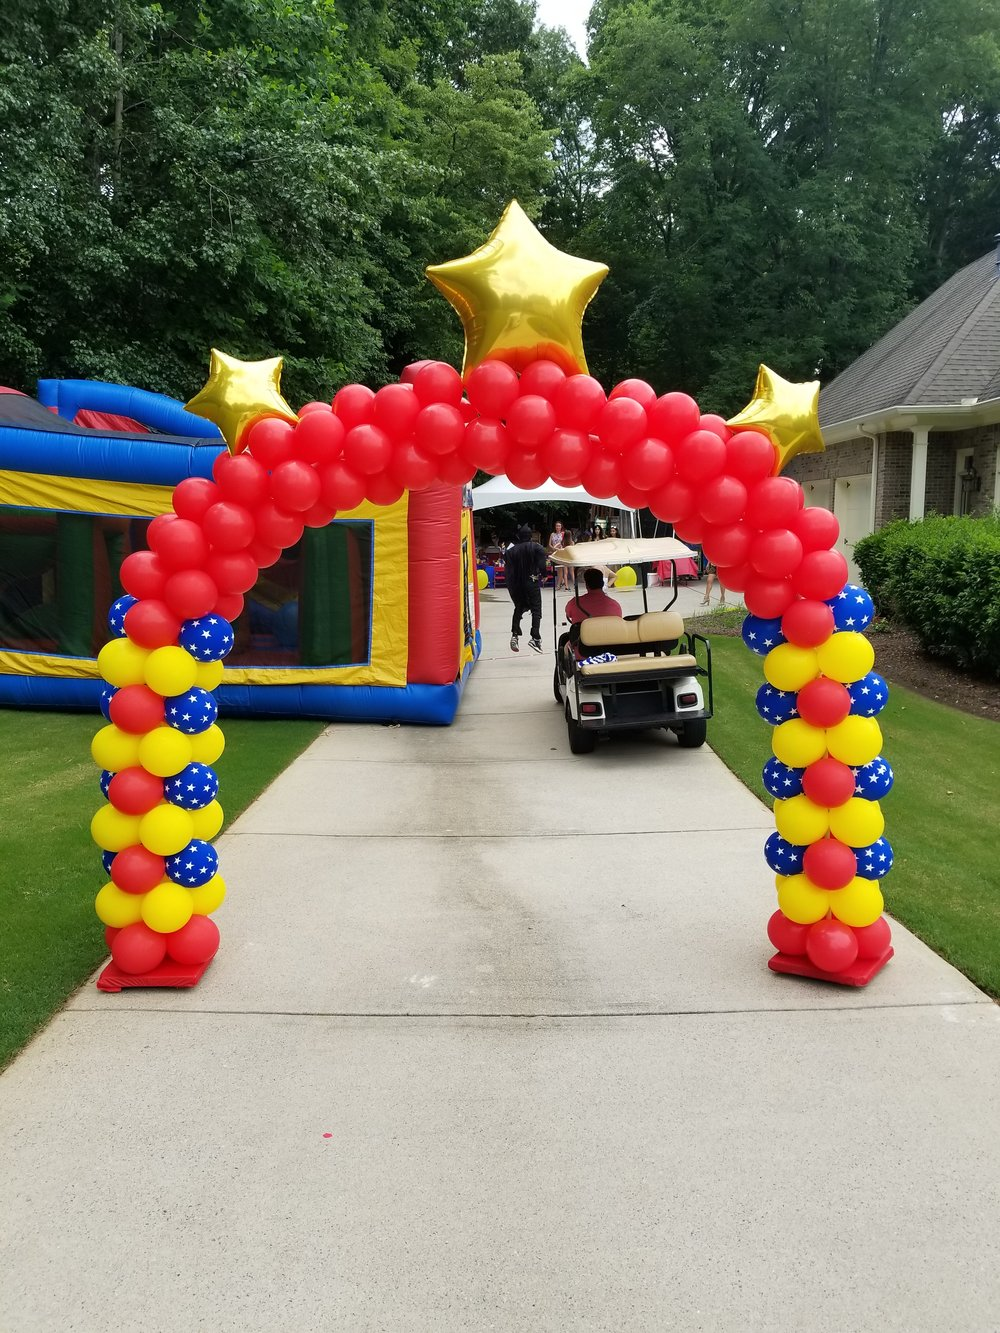 Wonder woman balloon arch.jpg